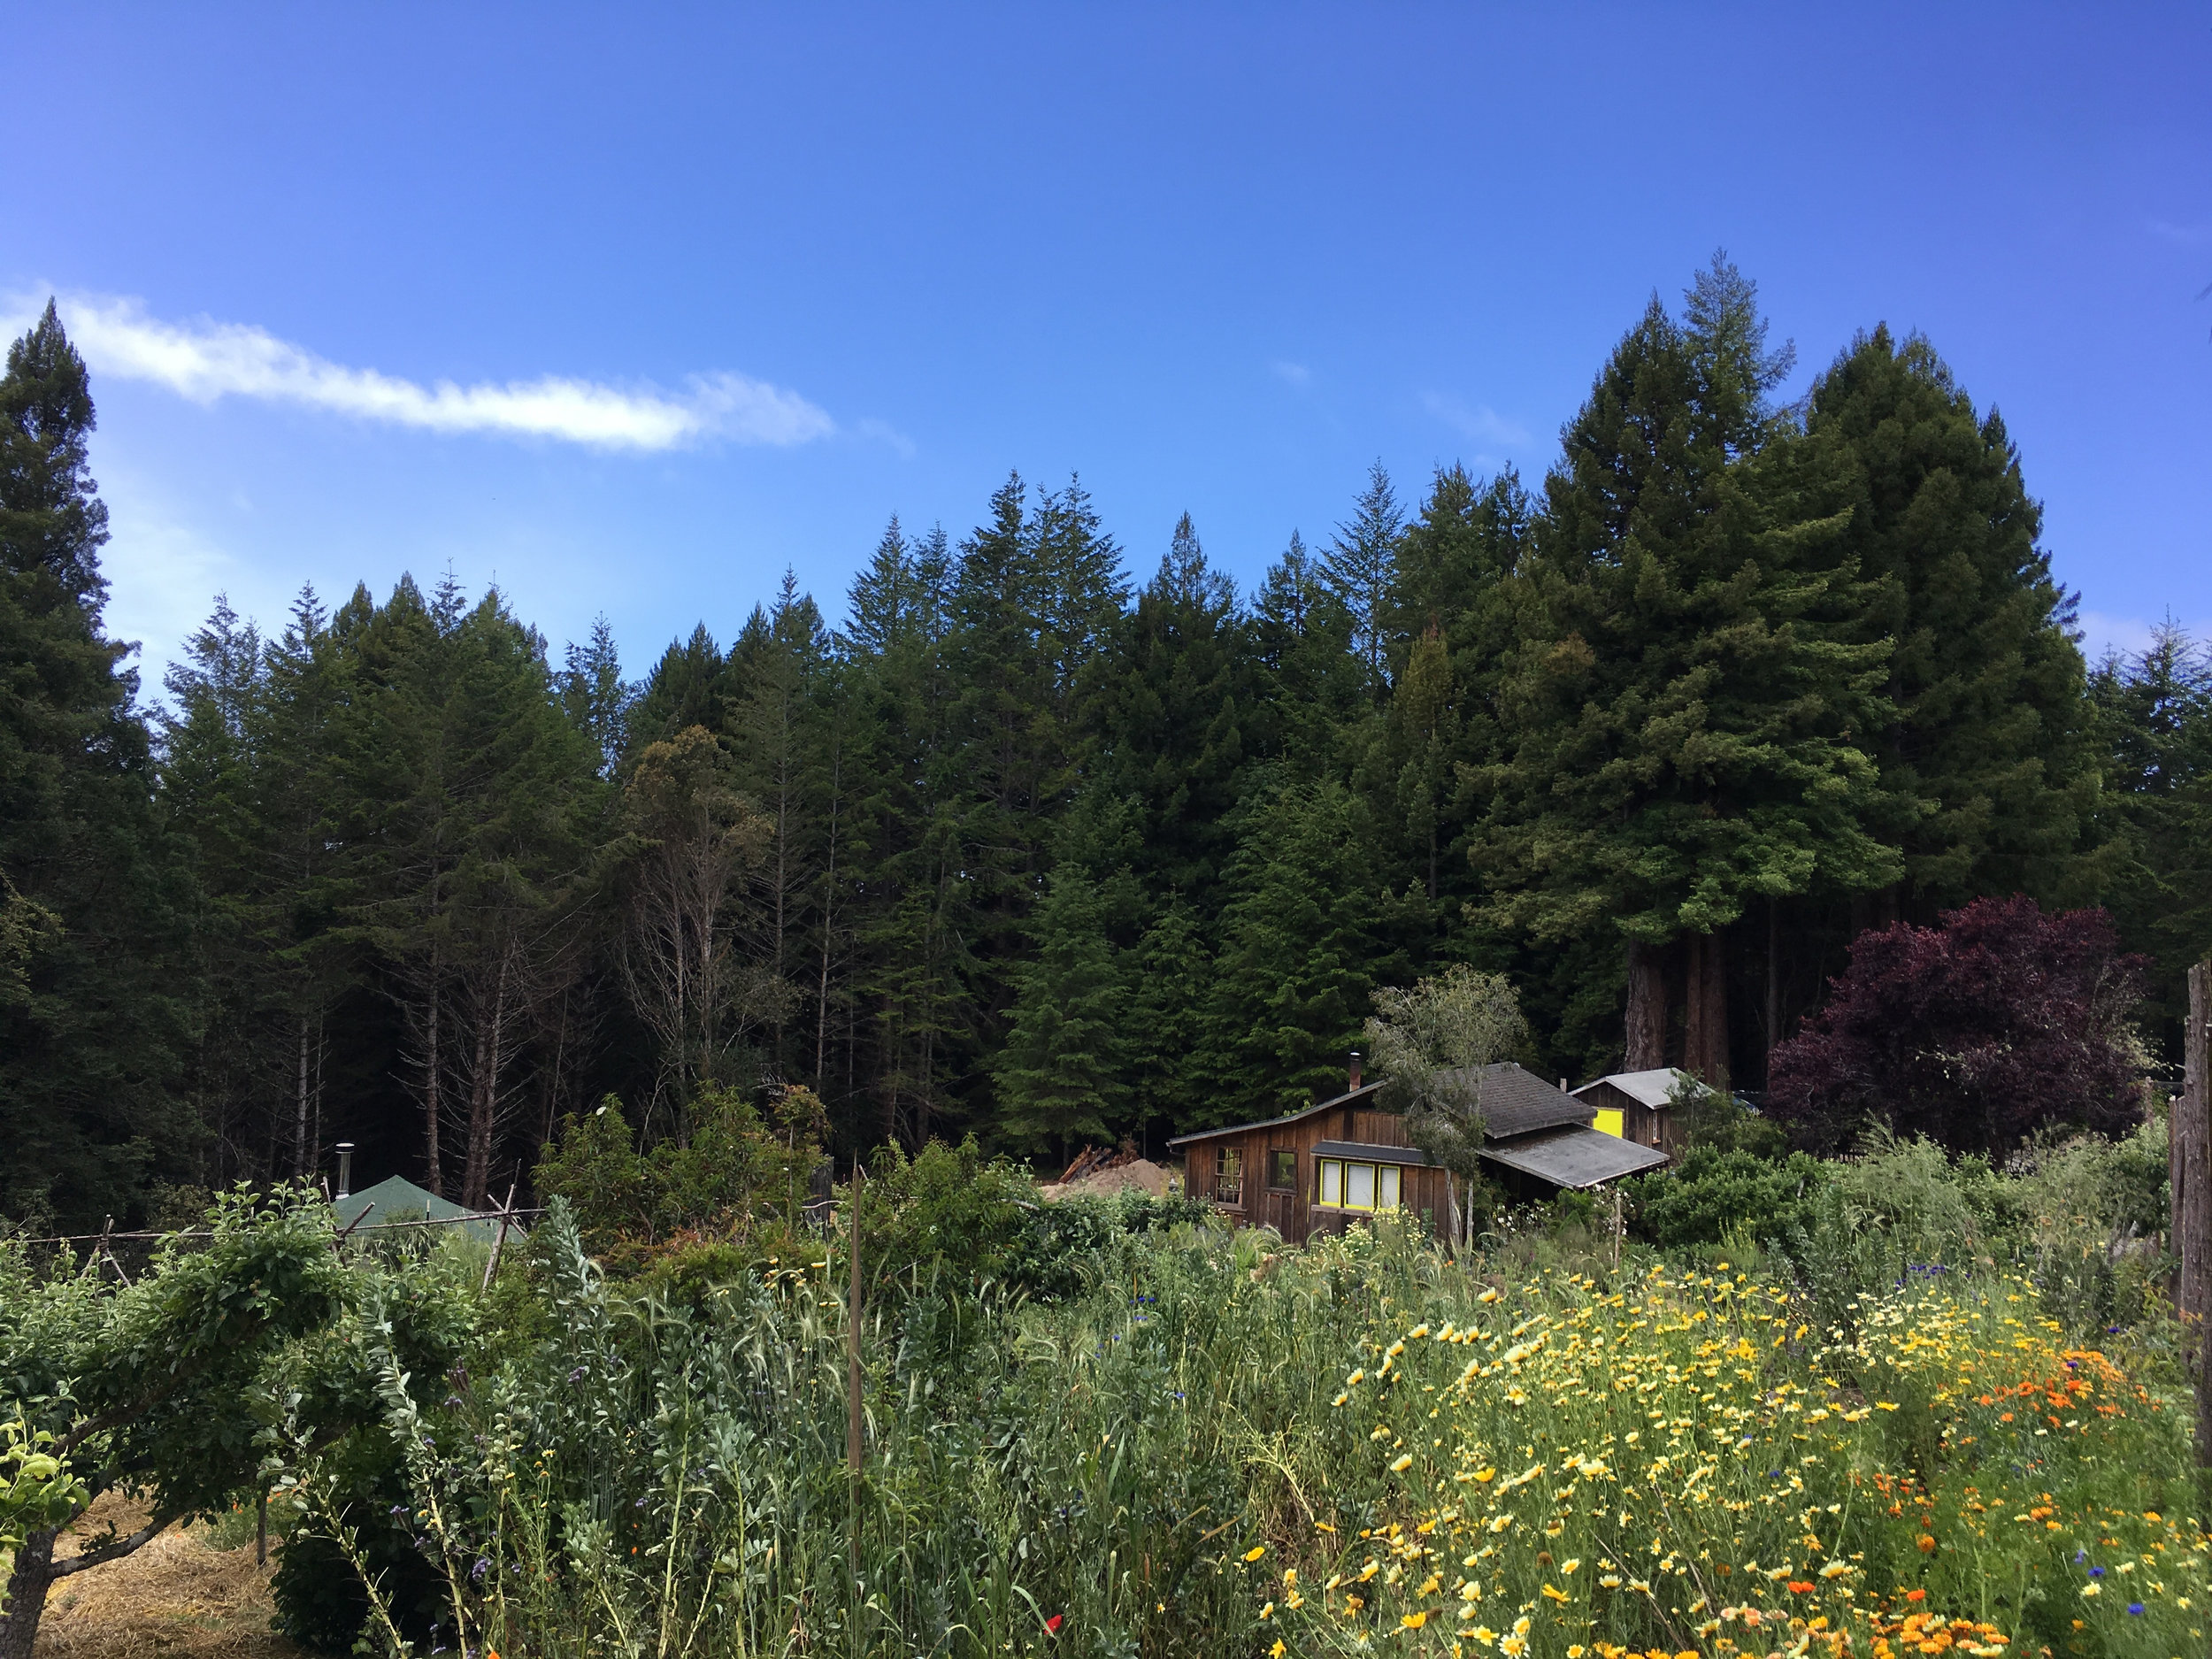 View of Orchard Cabin, Salmon Creek Farm, June 2018.